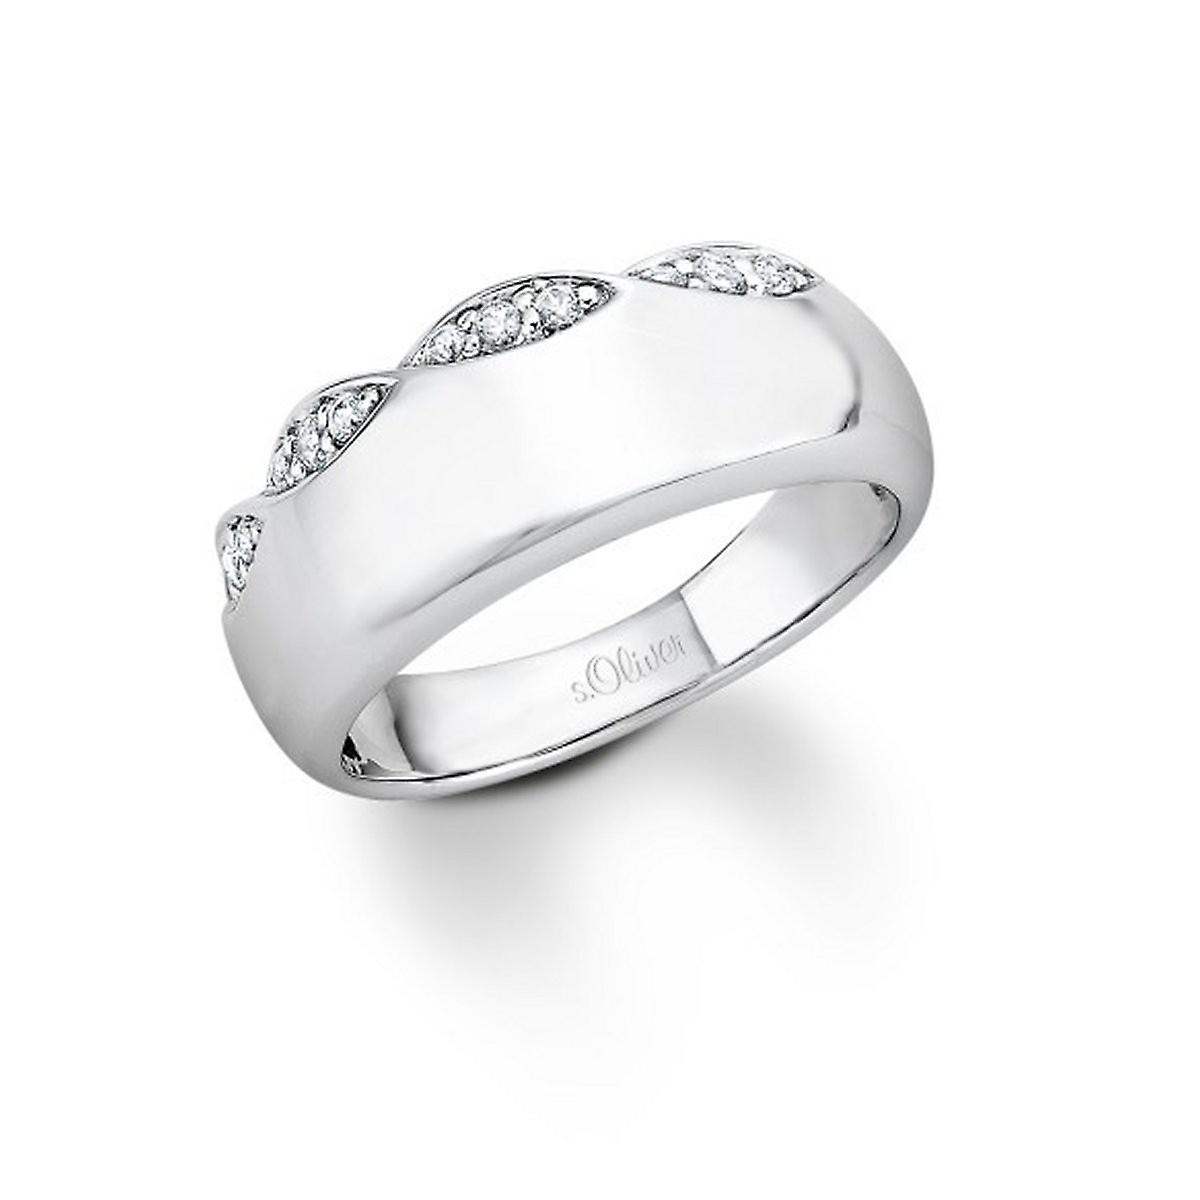 s.Oliver Jewel ladies ring silver Zirkonia SO741